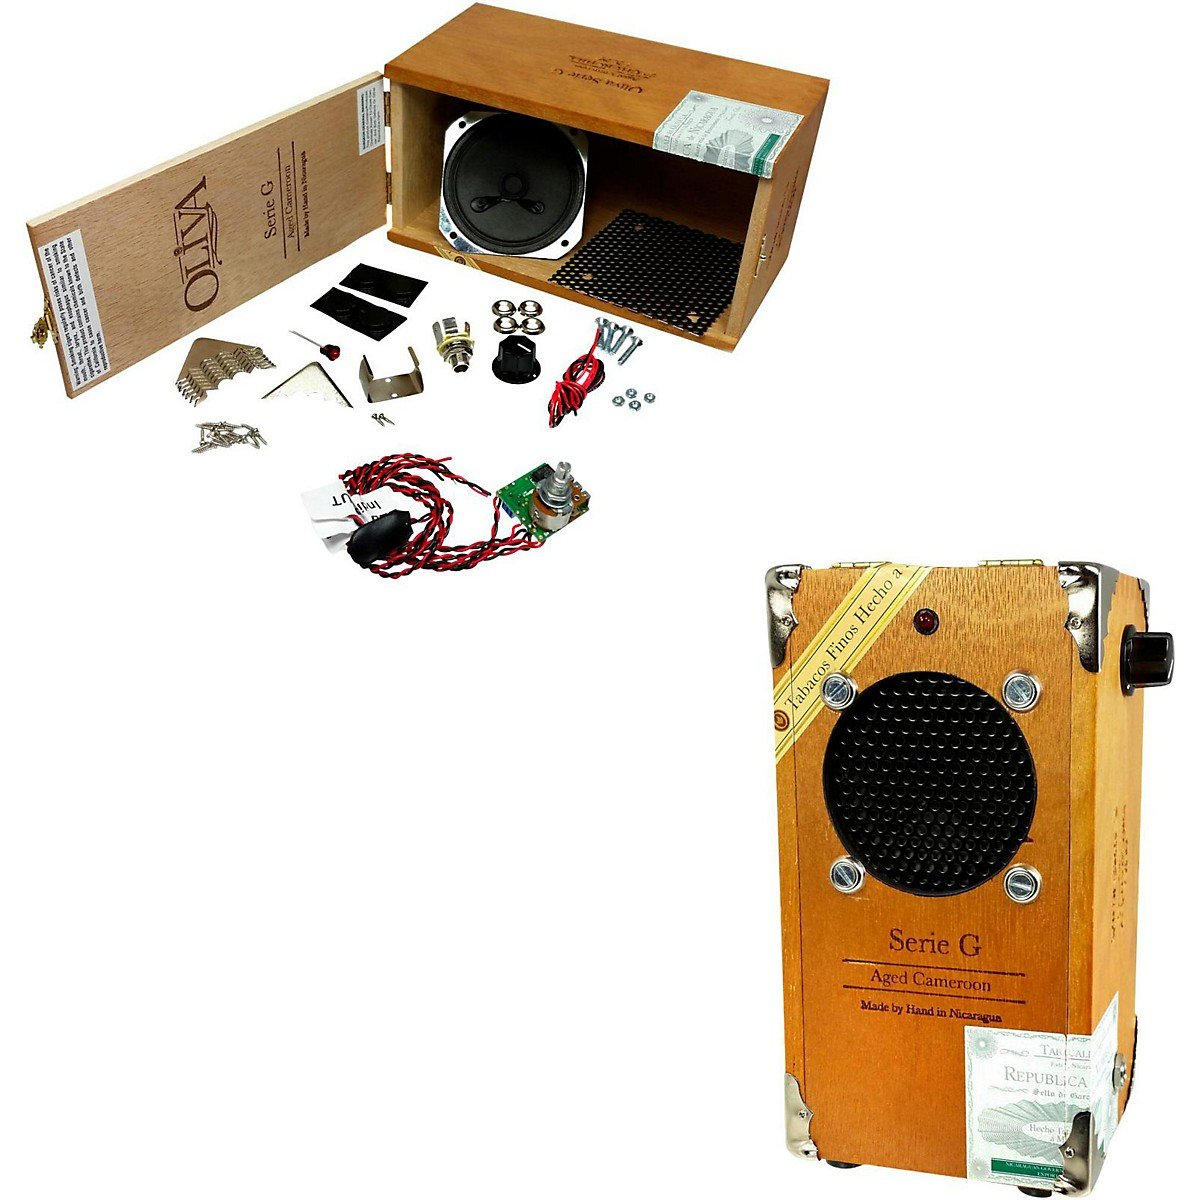 Cigar Box Amplifier Kit with Oliva G Cigar Box, Hardware and How-To Guide! C. B. Gitty Crafter Supply 52-003-02